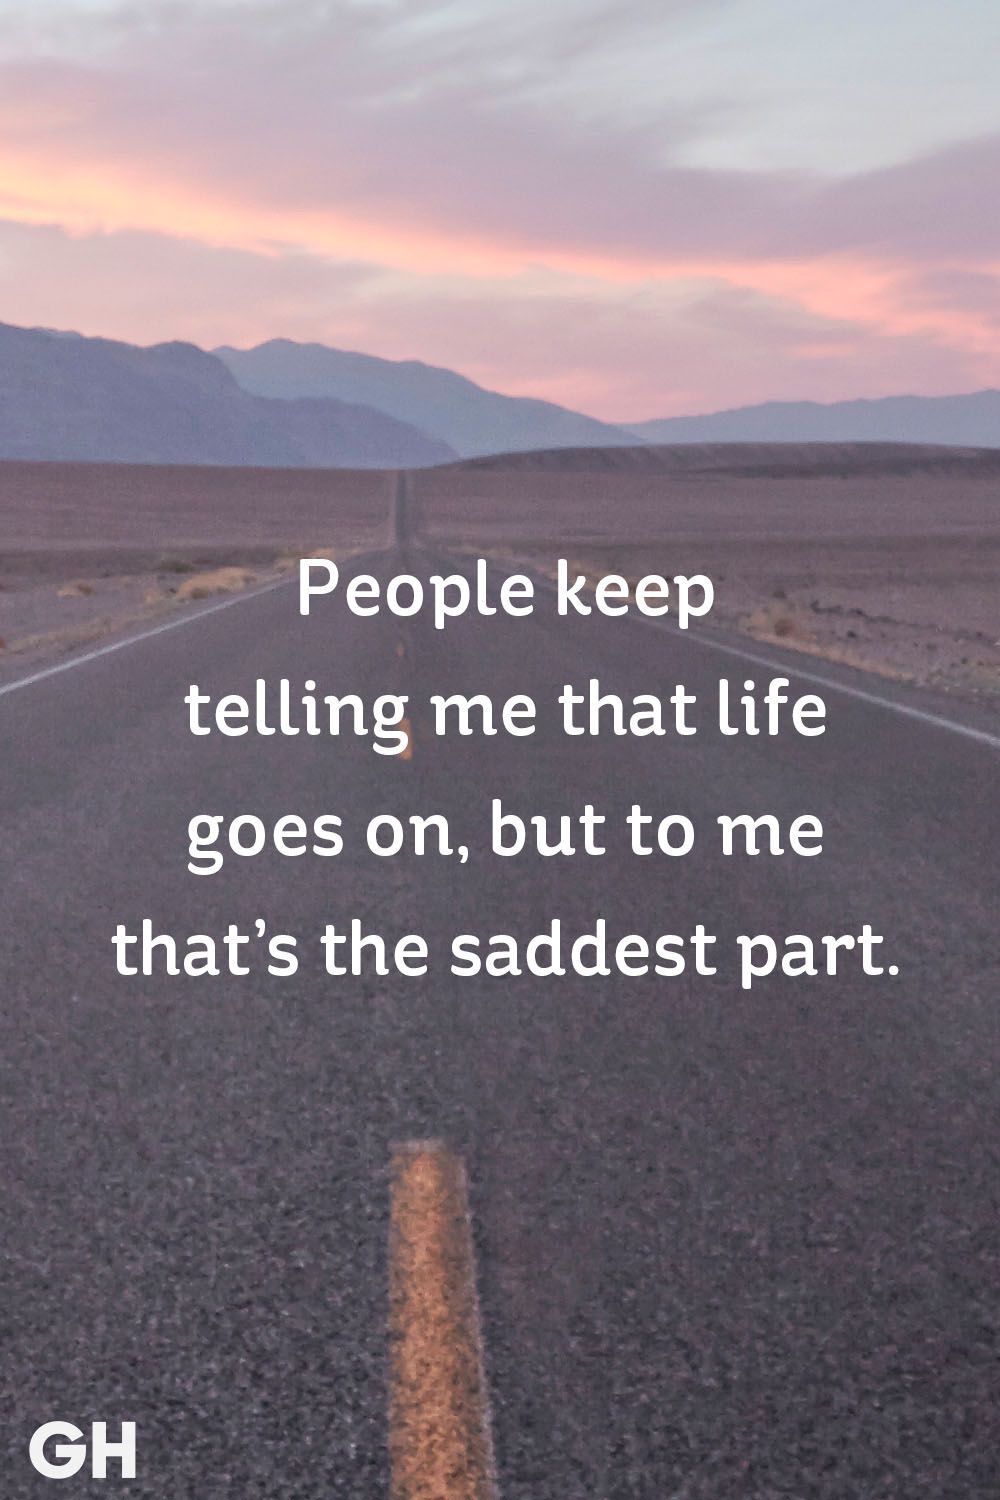 Sad Proverbs About Life Pinterest thumbnail